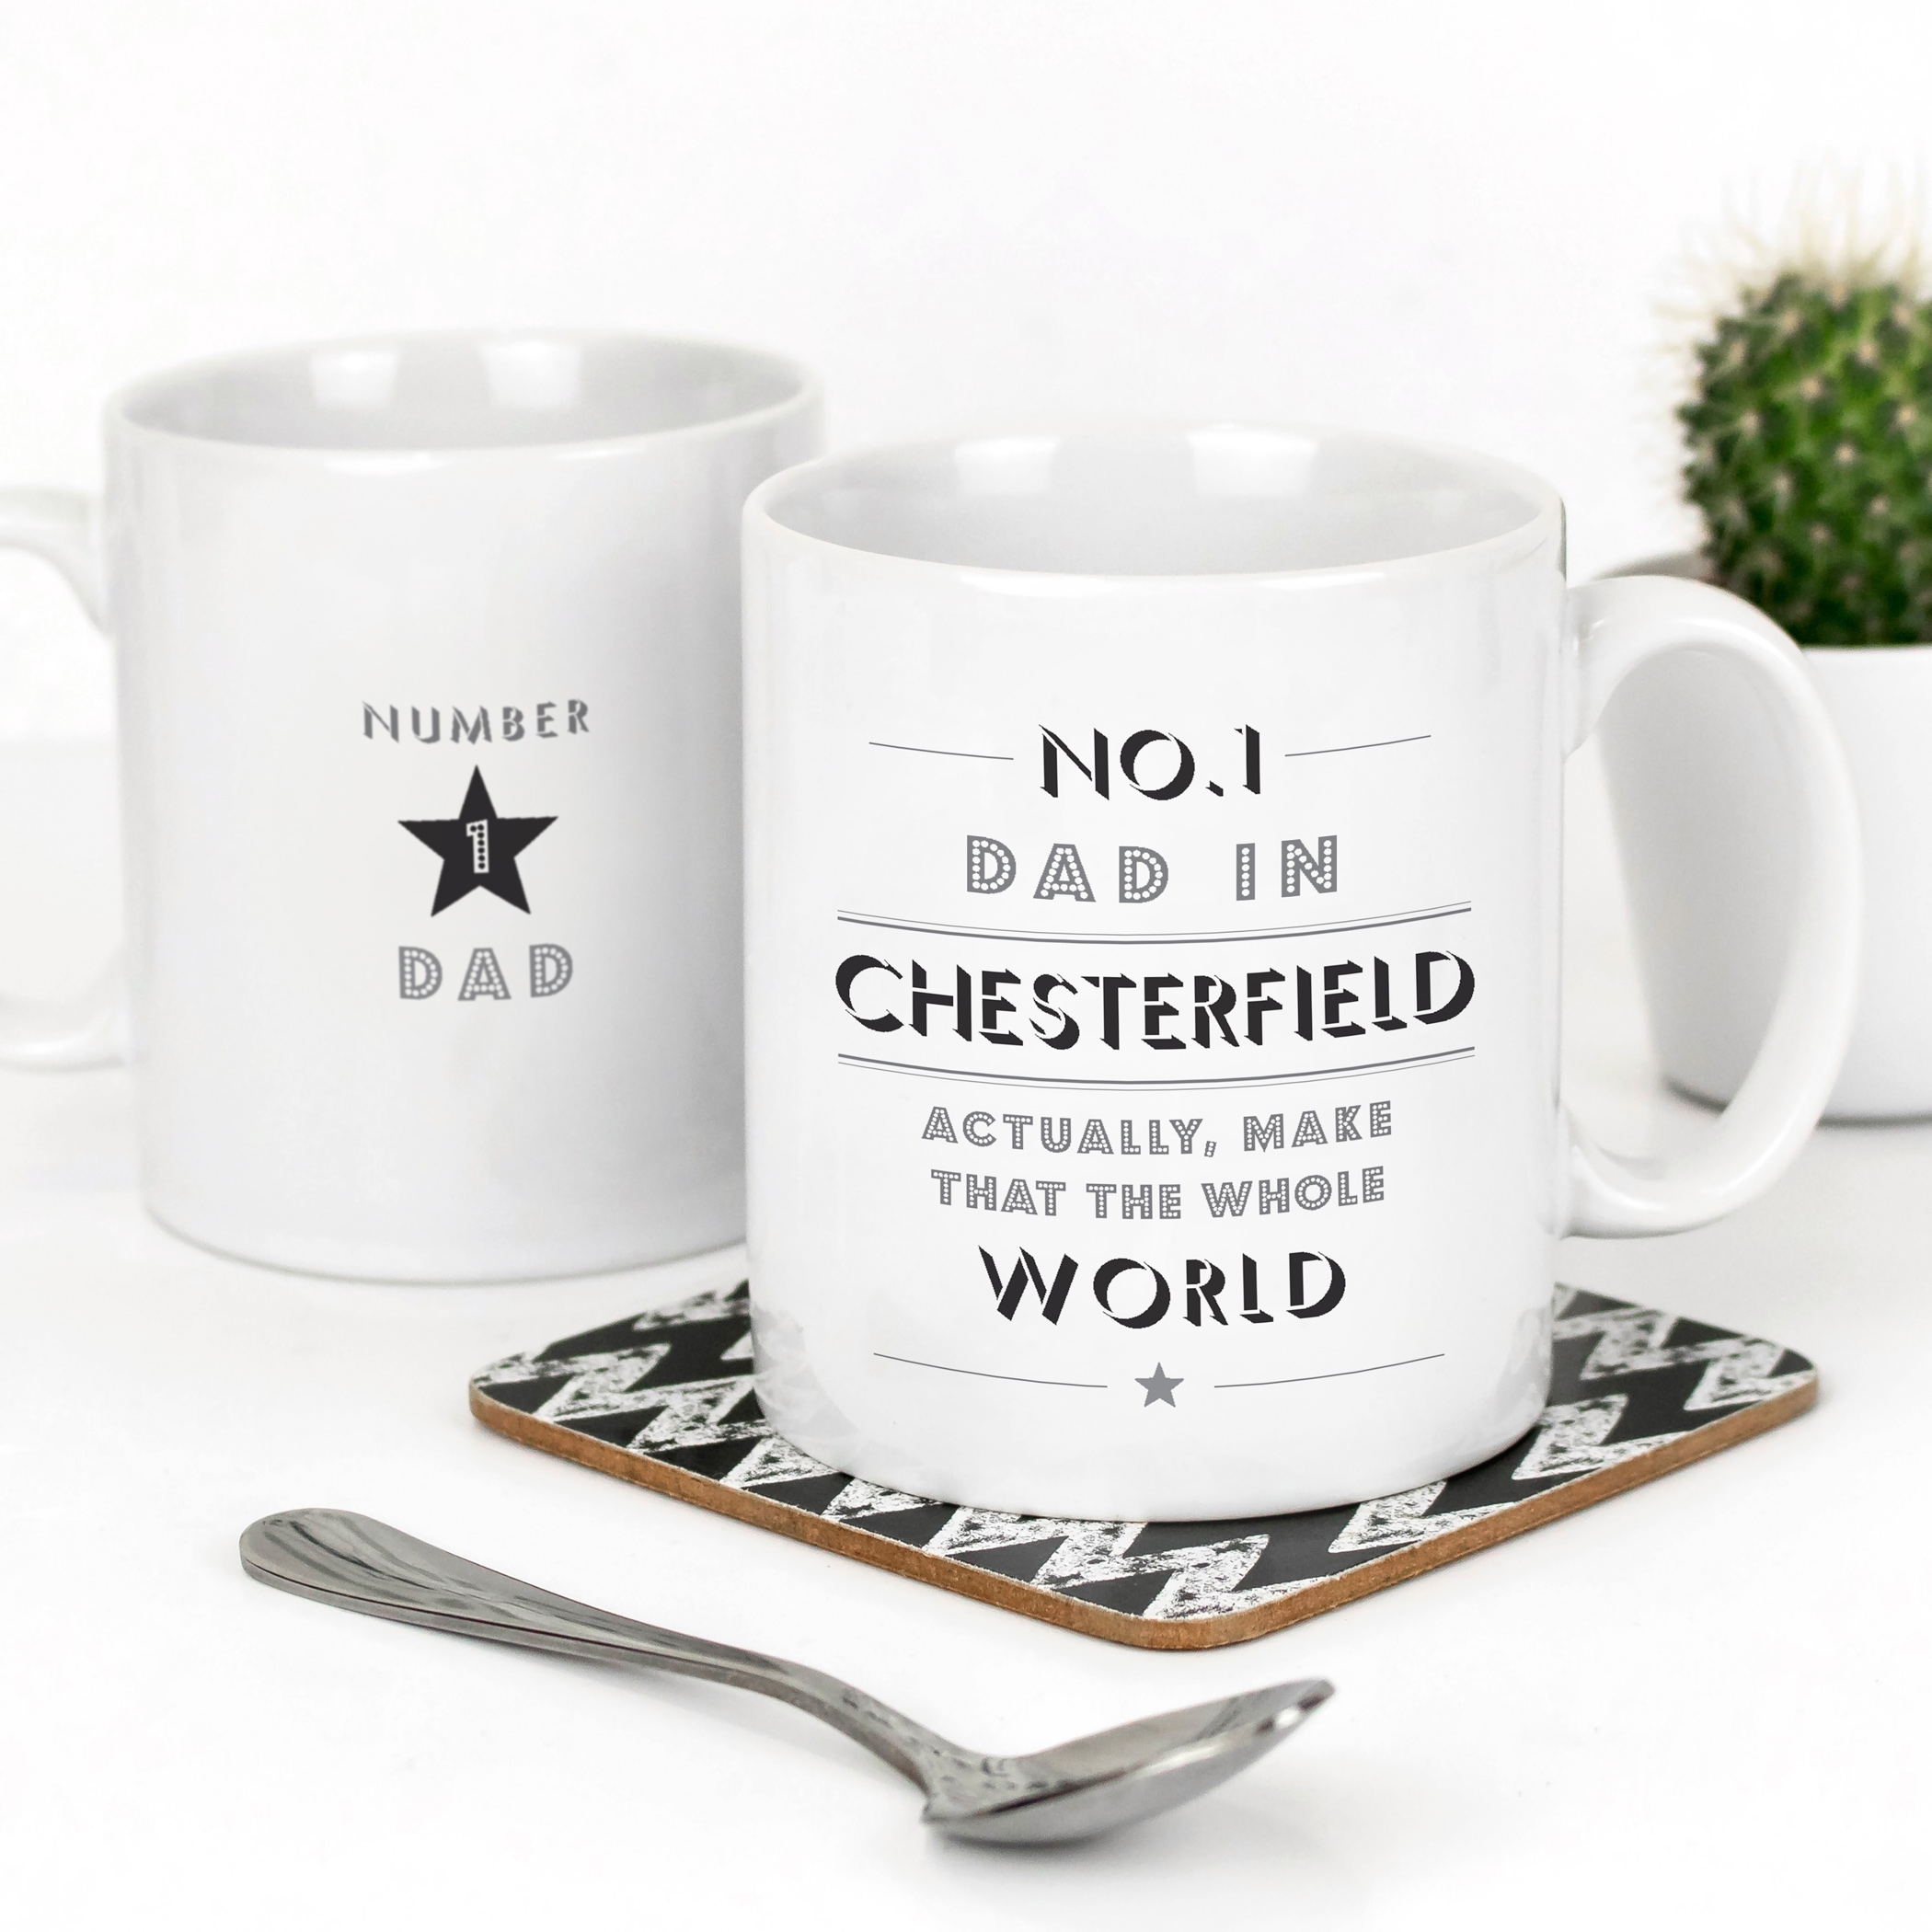 No 1 Dad in Chesterfield Mug